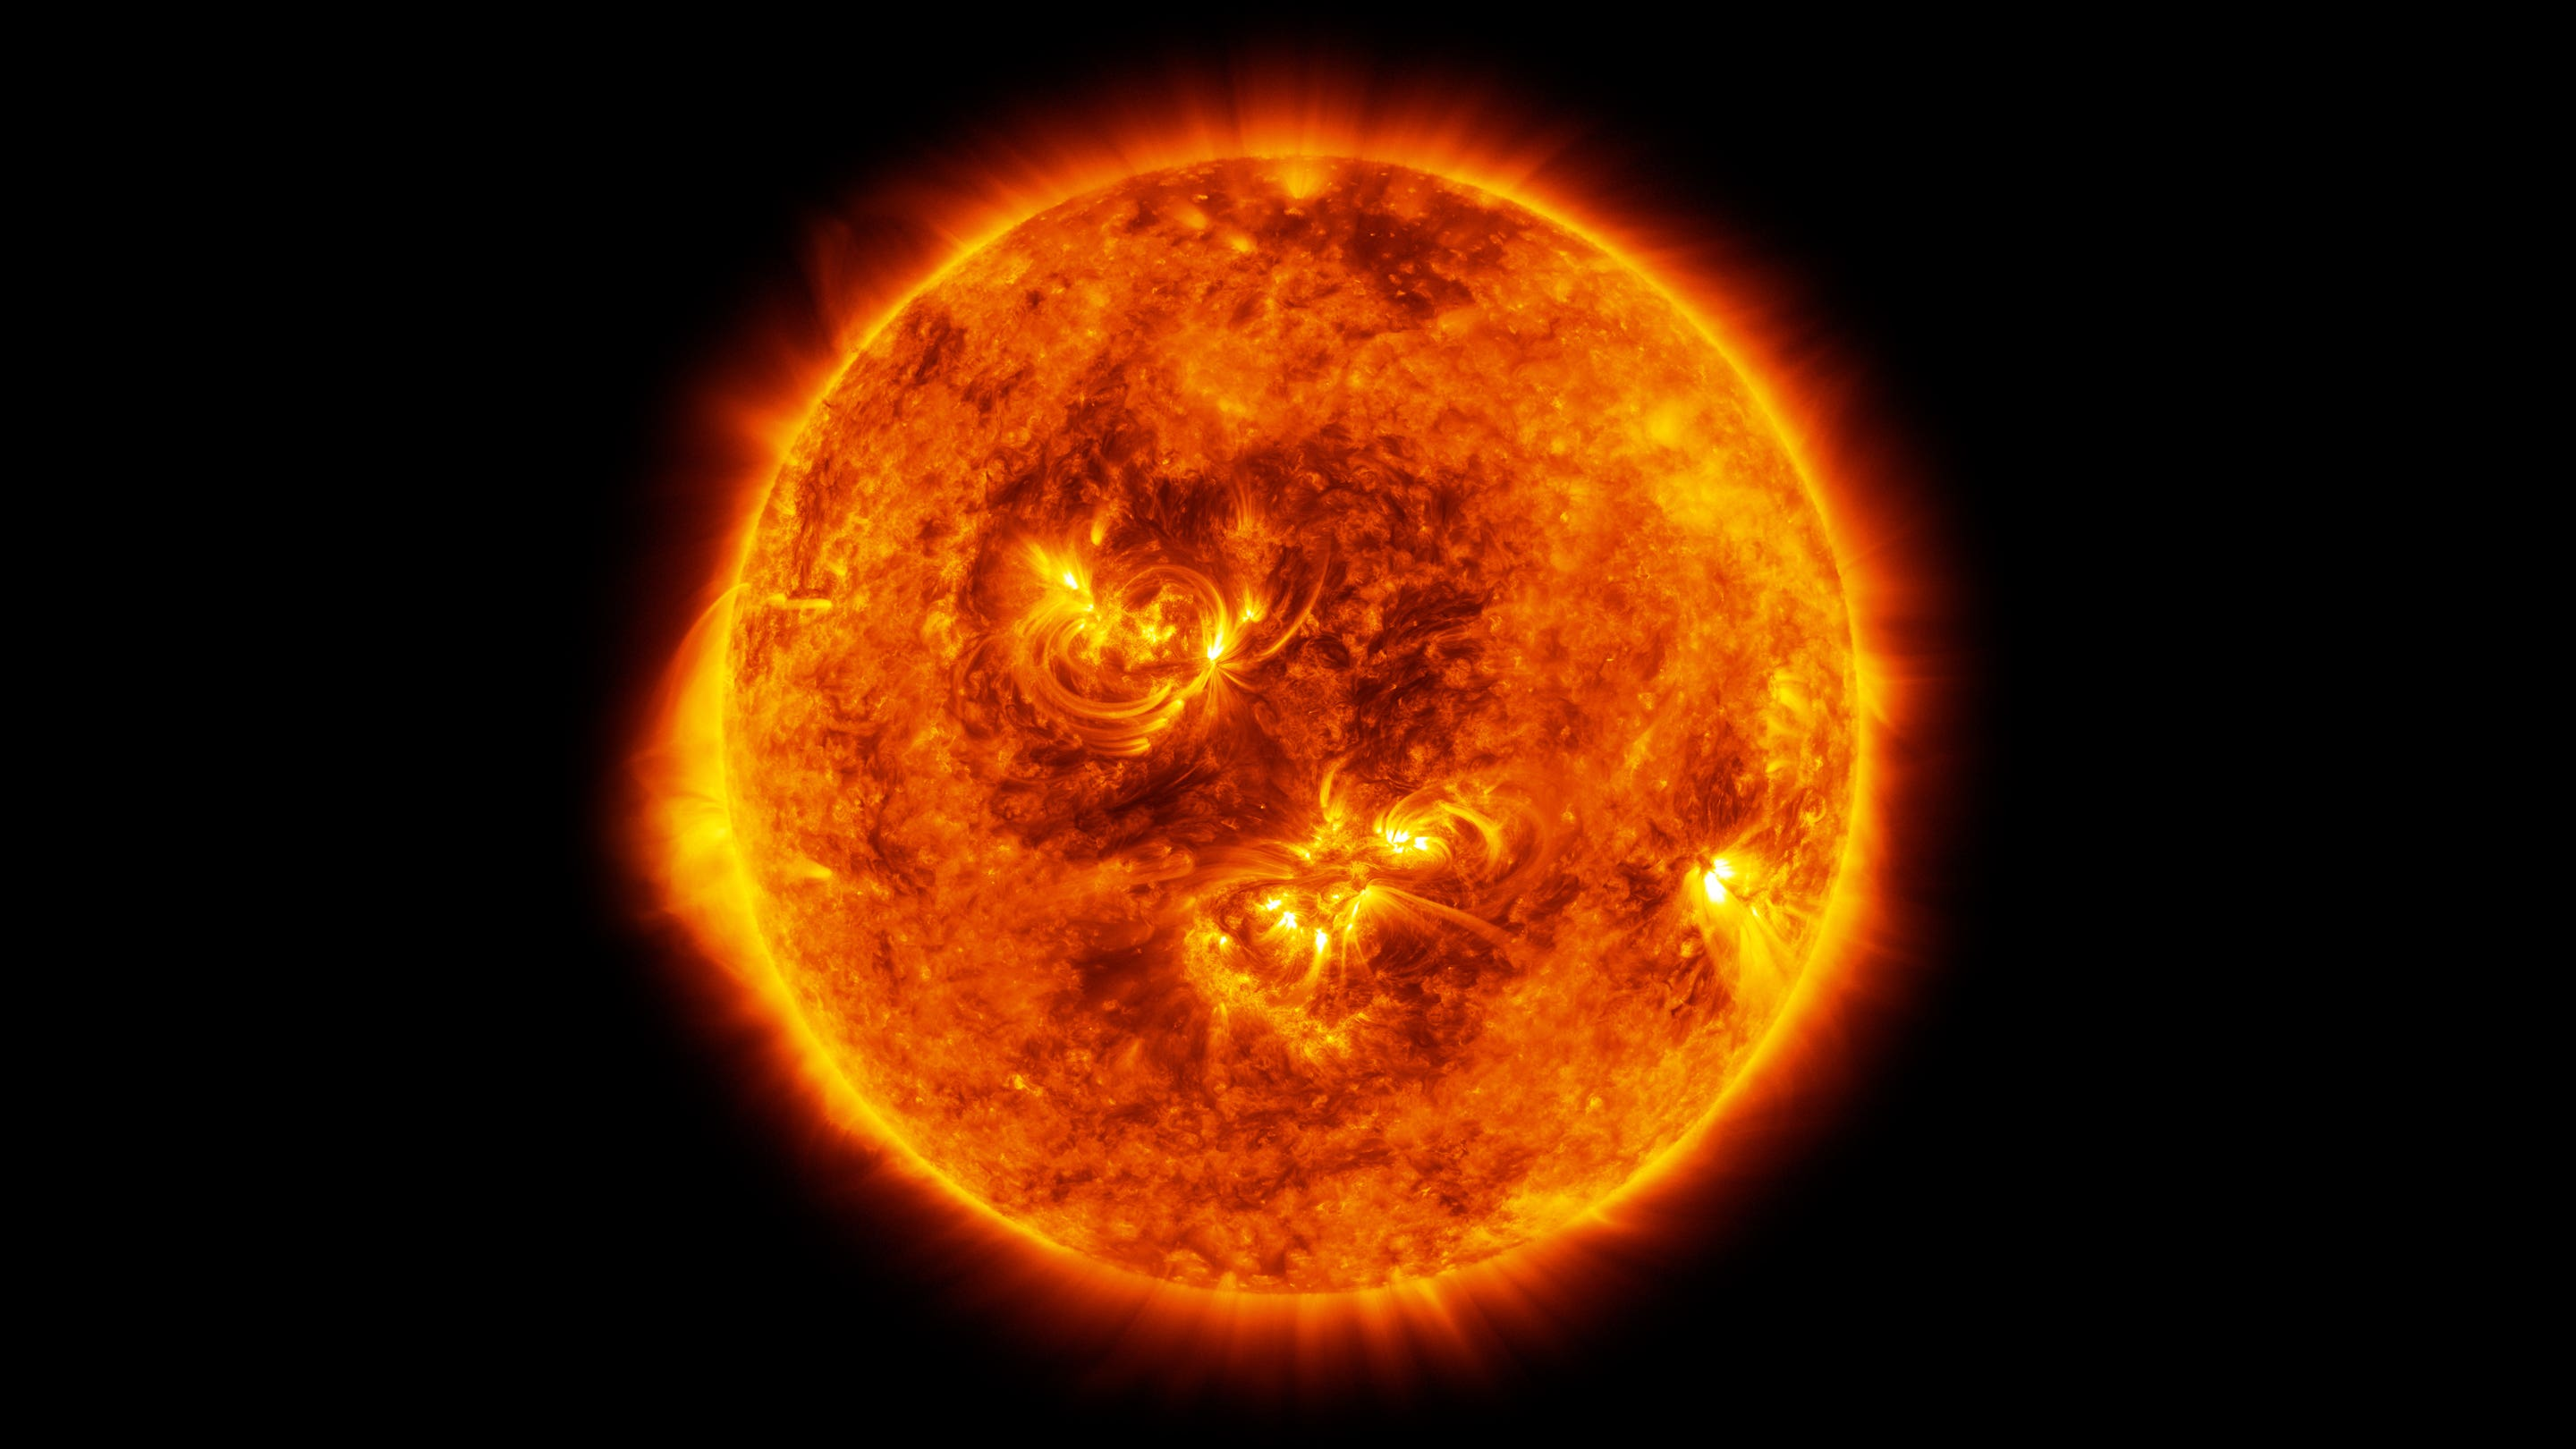 Sun and its Features